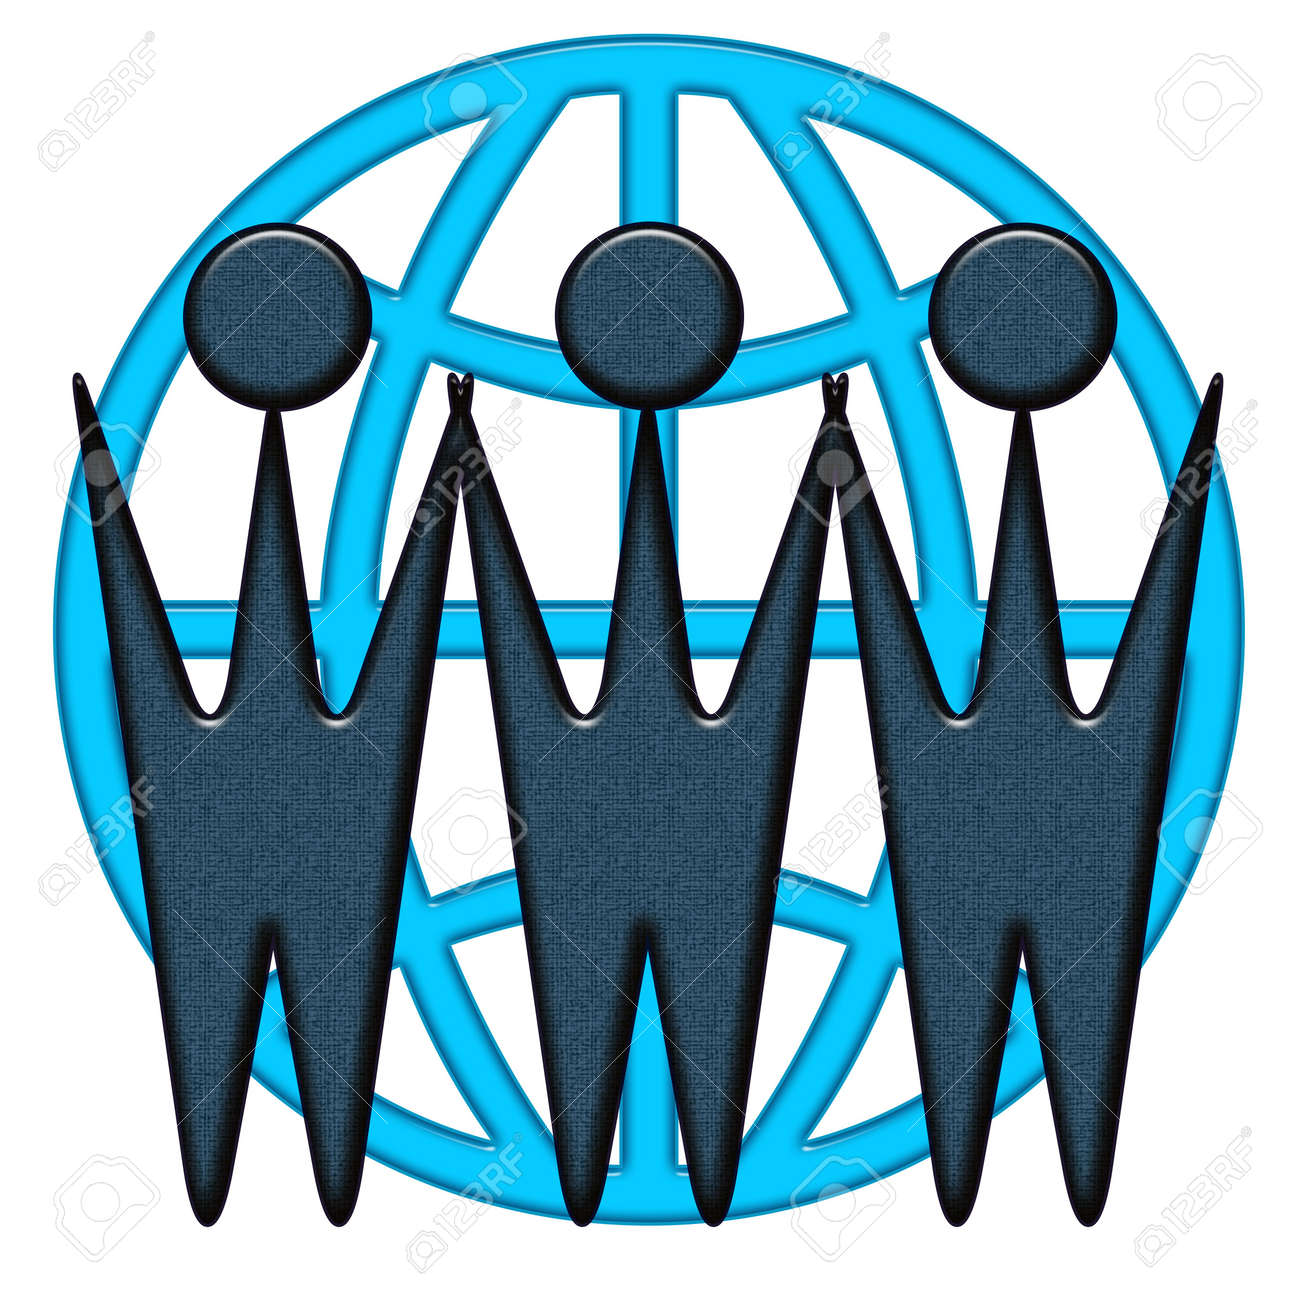 Global worldwide business cooperation blue icon with WWW letters as business people silhouettes Stock Photo - 7087545